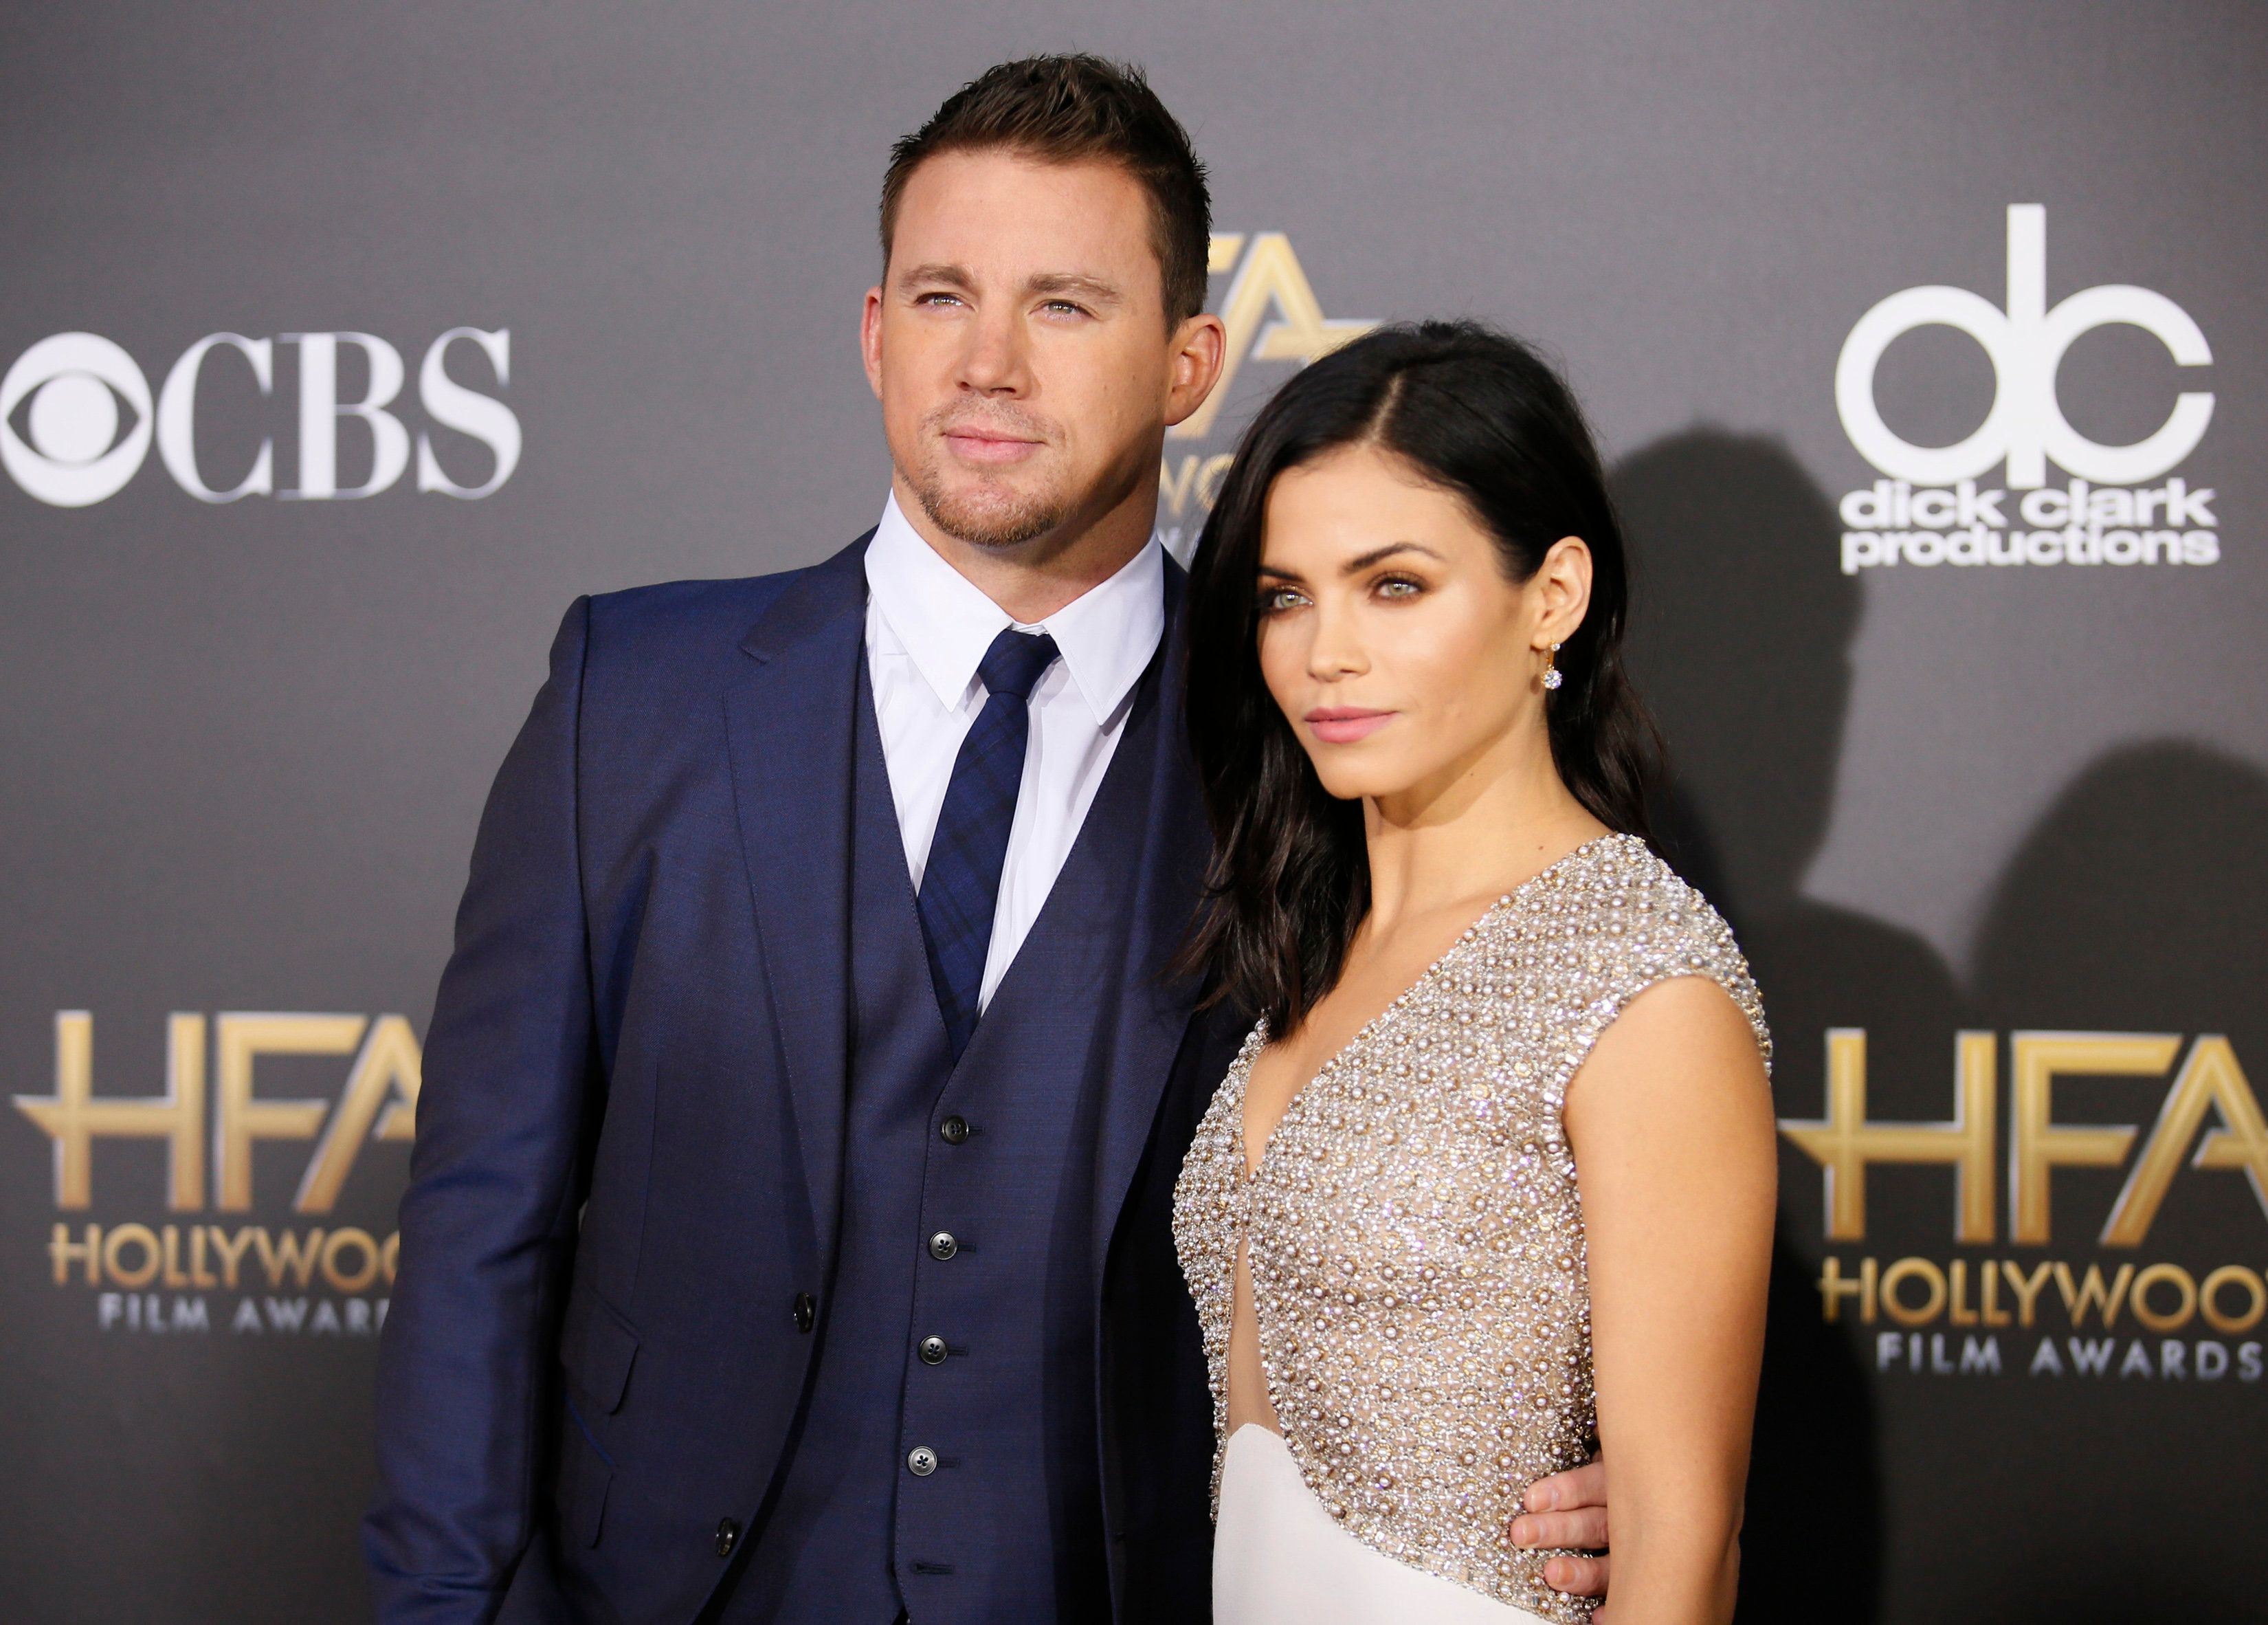 Channing Tatum and Jenna Dewan Tatum, pictured above at an event in 2014, split after nearly nine years of marriage.